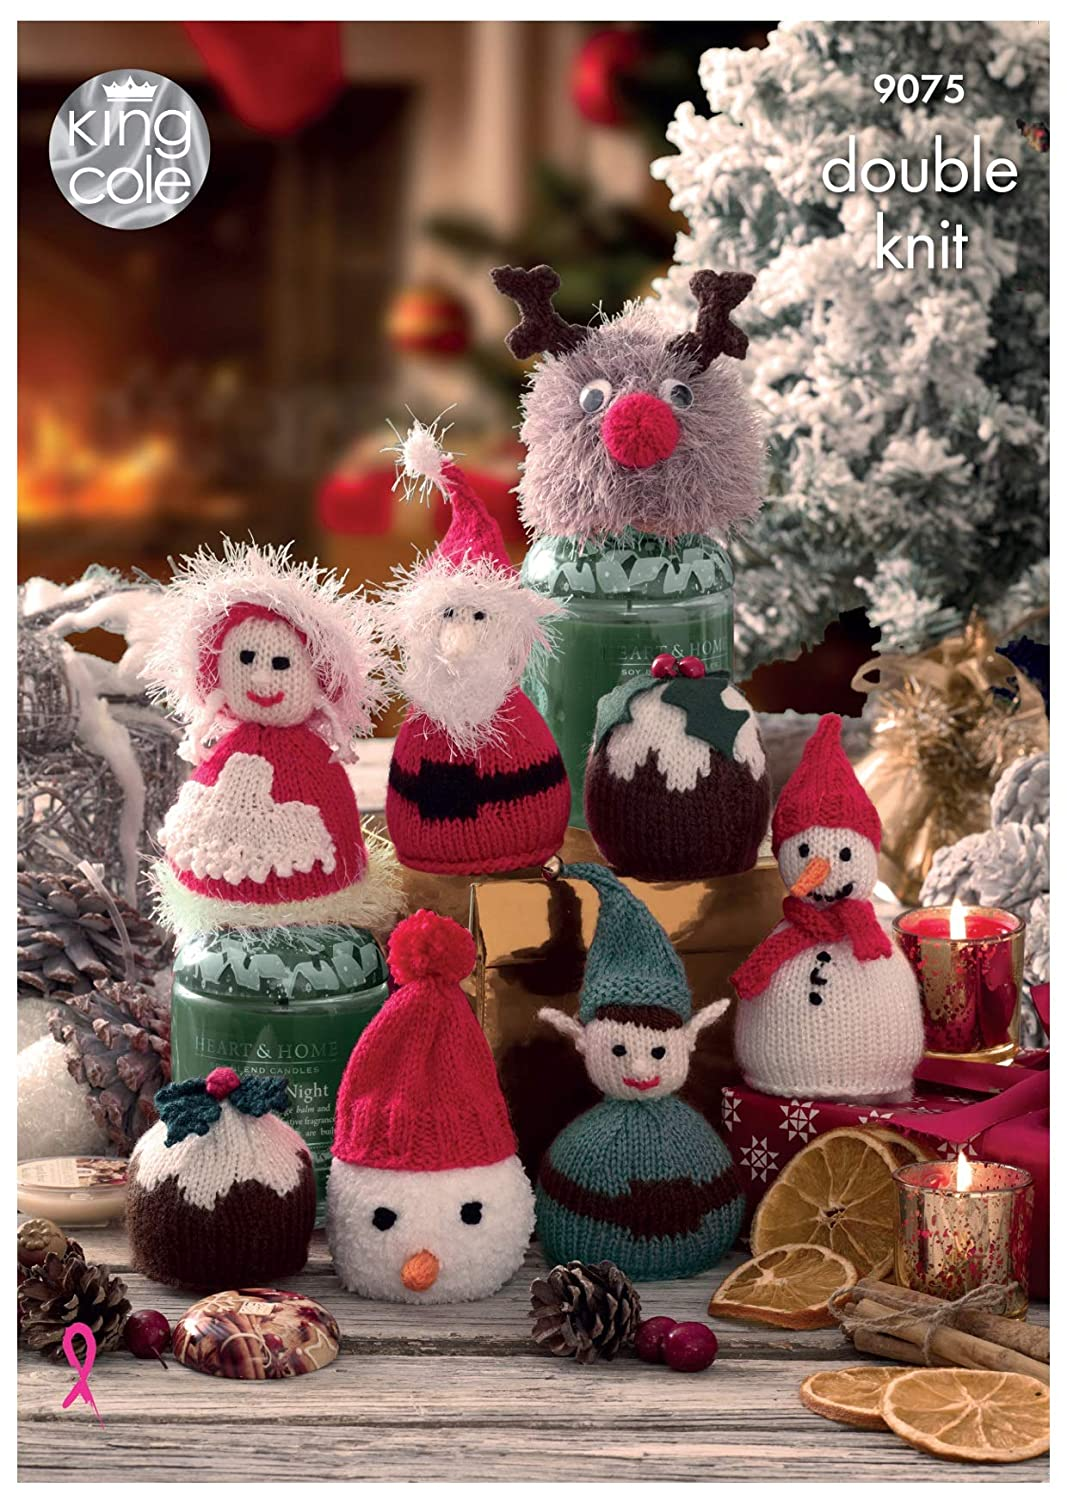 Christmas Knitting Patterns For Ferrero Rocher.King Cole 9075 Knitting Pattern Christmas Candy Cosies In Dollymix And Pricewise Dk